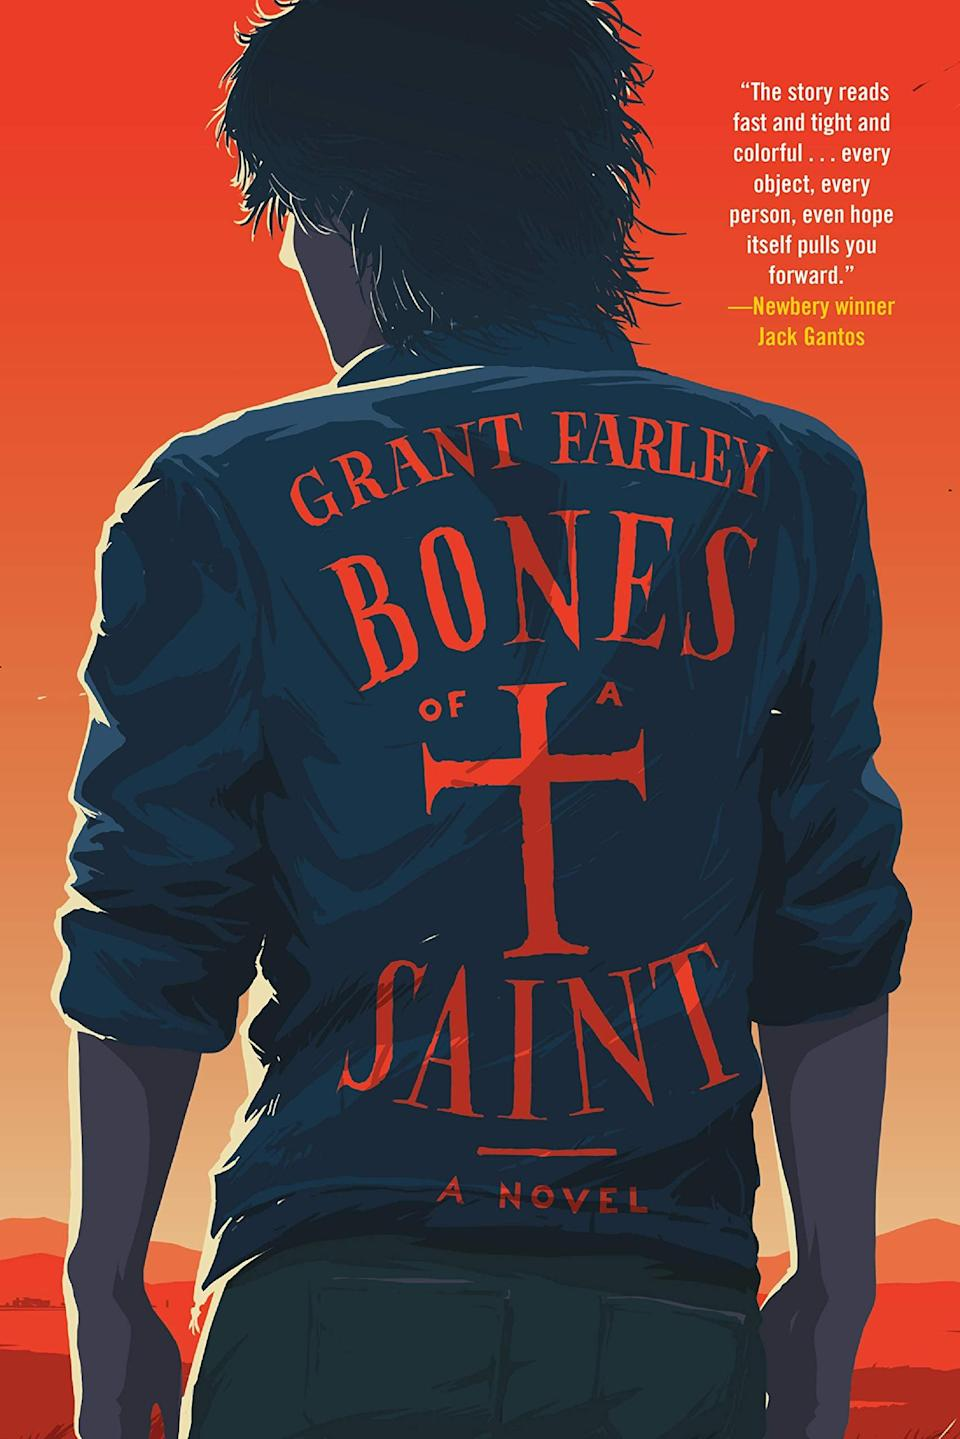 <p><span><strong>Bones of a Saint</strong></span> by Grant Farley will transport you to 1970s California where 15-year-old RJ Armante struggles to break free from The Blackjacks, a gang with an iron grip on his small town. If RJ can defy The Blackjacks, he may just be able to save himself and the rest of the town's kids from an endless cycle of violence, but nothing about his plan will go smoothly. </p> <p><em>Out March 16</em></p>